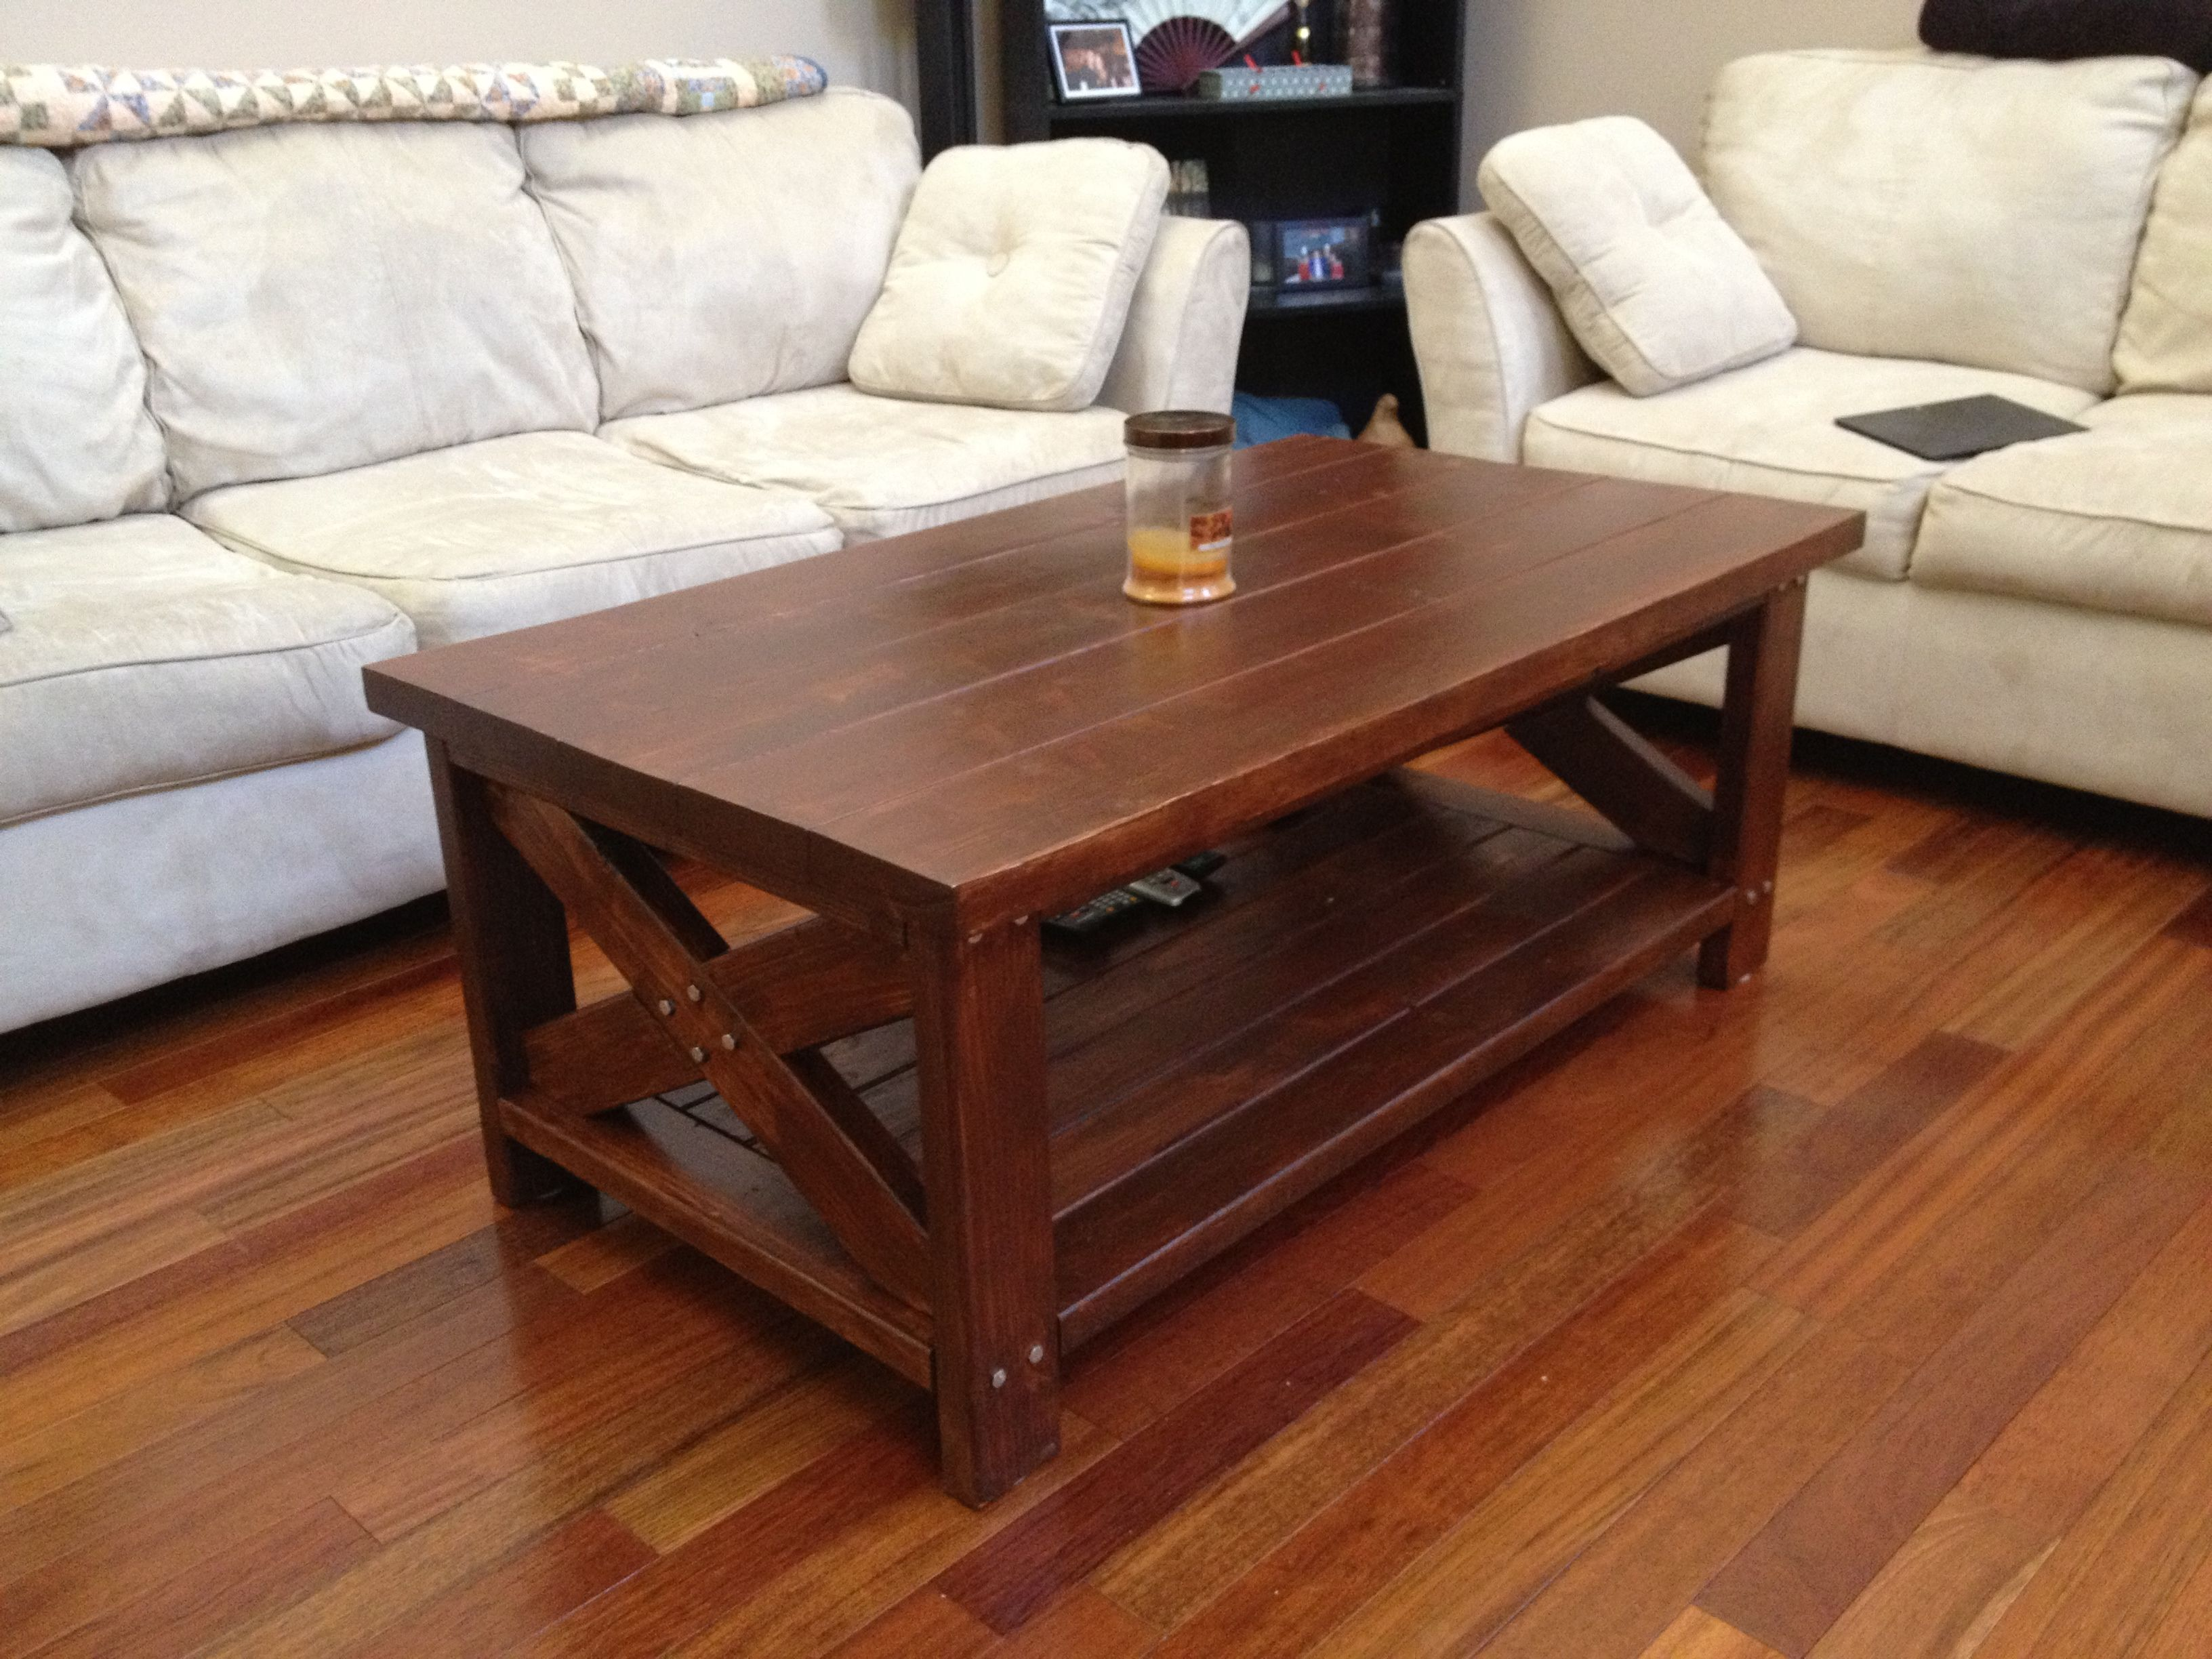 Rustic Farm Style Coffee Table Made From 2x4 S And 2x6 S 2x4engineering Com